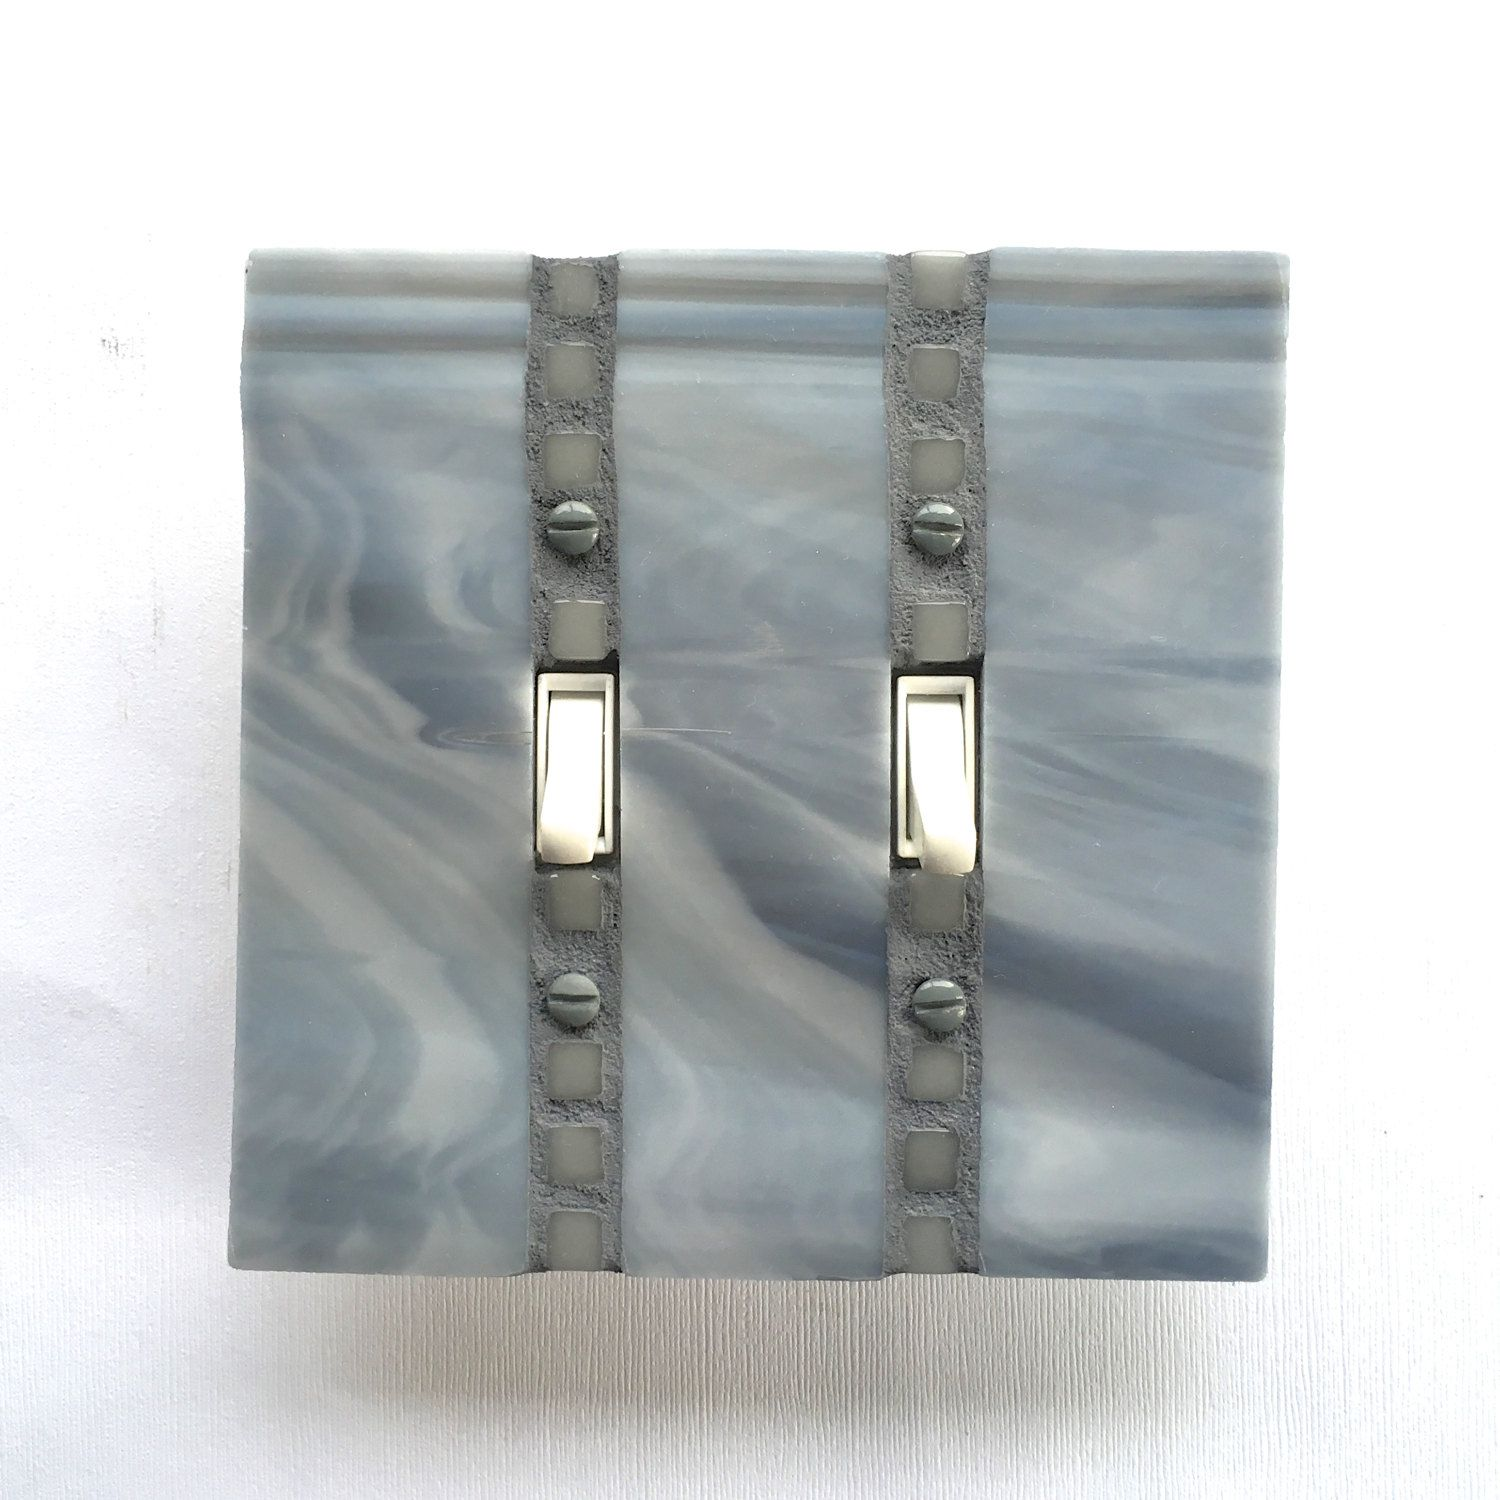 Decorative Light Switches Gray Switchplate Grey Light Switch Plate Decorative Light Switch